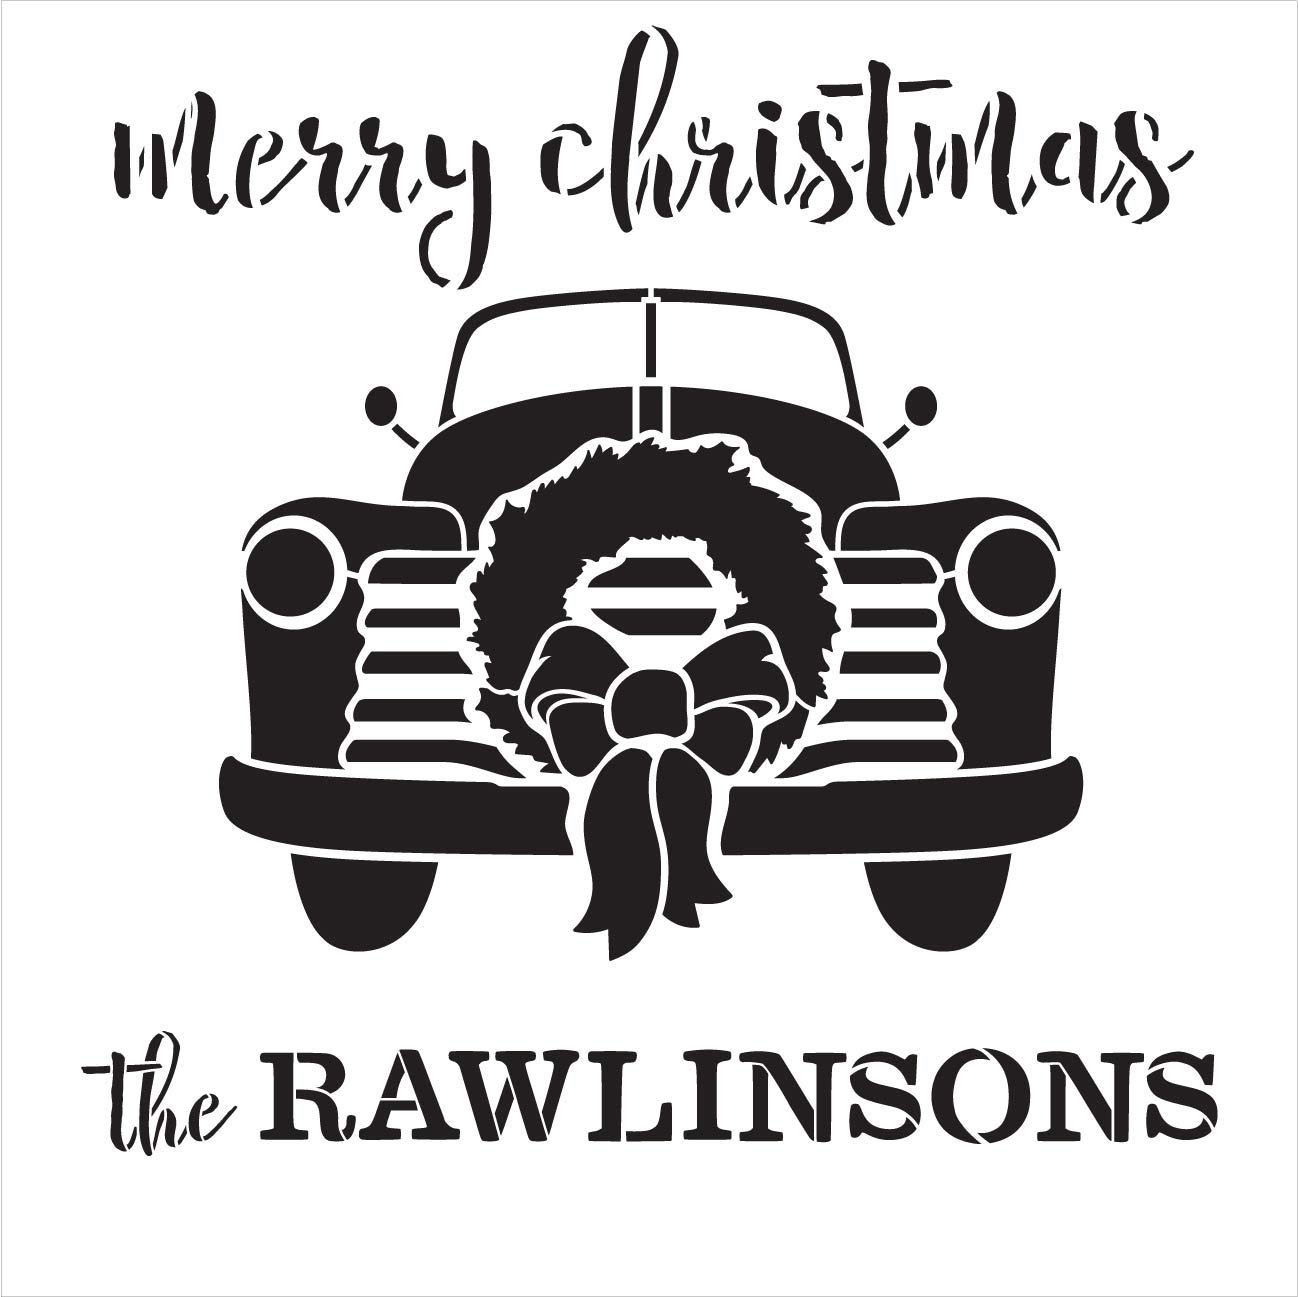 Personalized Merry Christmas Stencil with Red Truck & Wreath | DIY Rustic Holiday Home Decor | Custom Vintage Family Decoration Gift | Craft & Paint Wood Signs | Reusable Mylar Template | Select Size